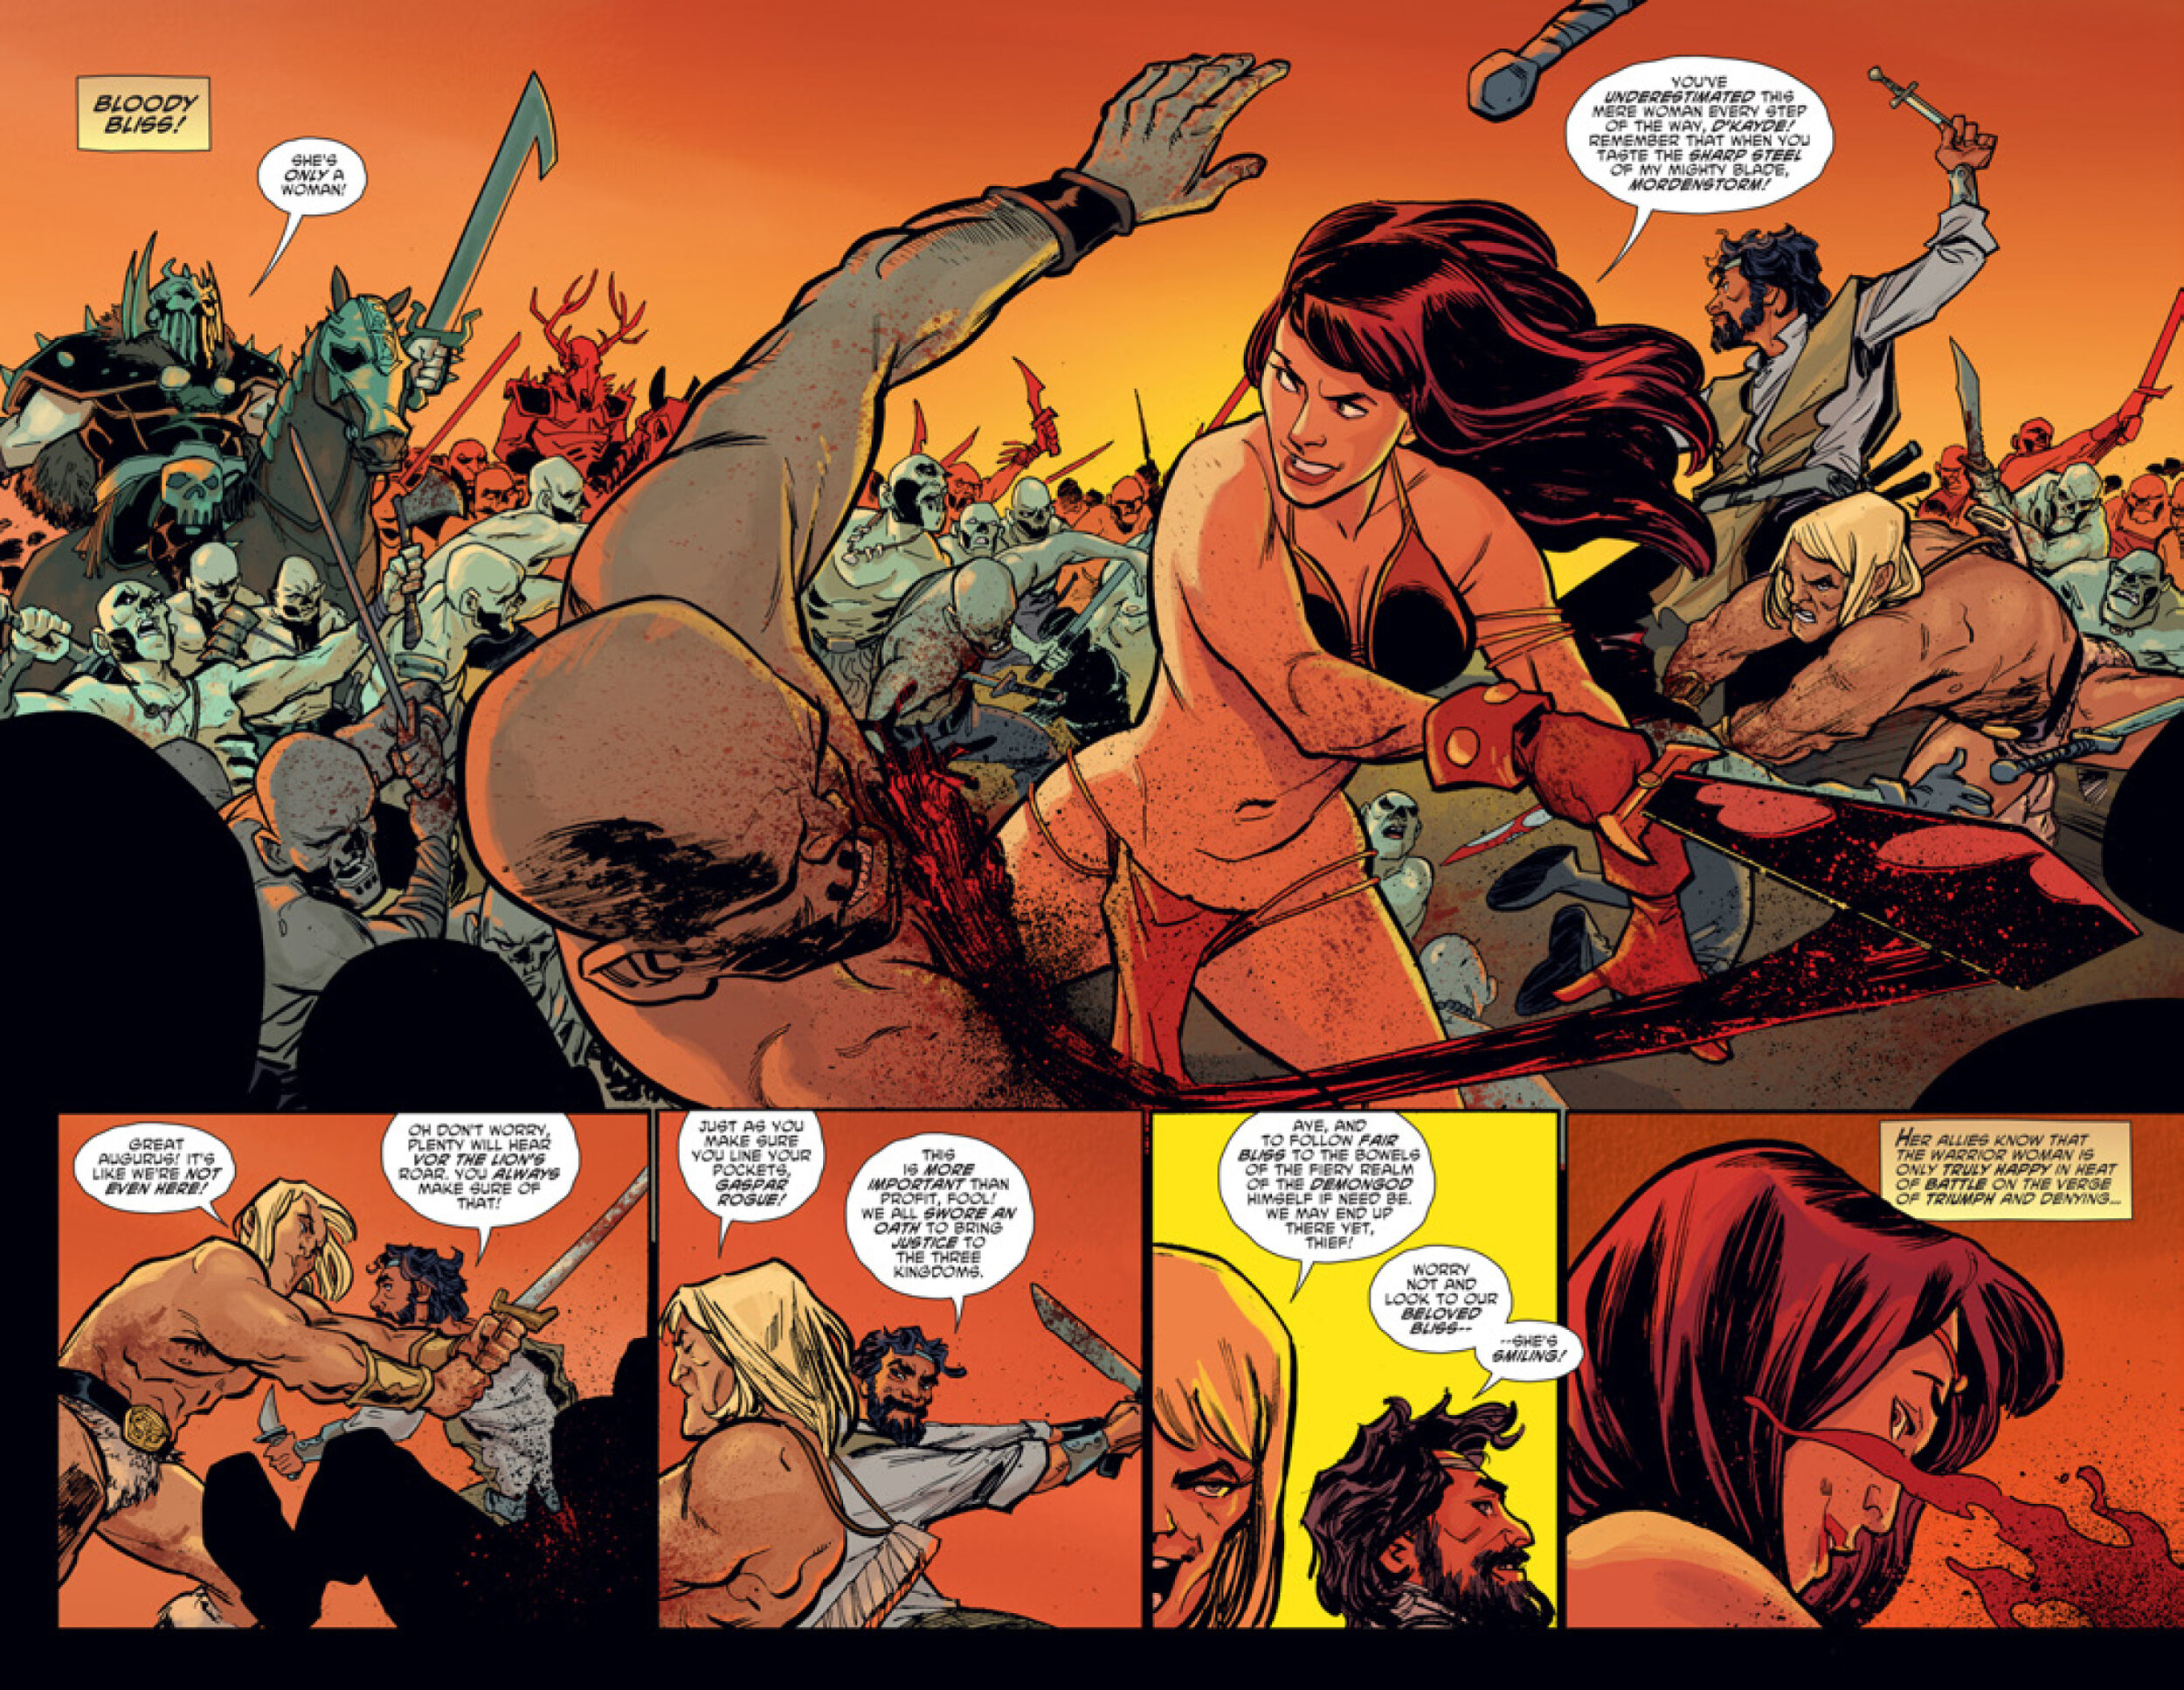 Crone01-Preview Pages-02-03.jpg